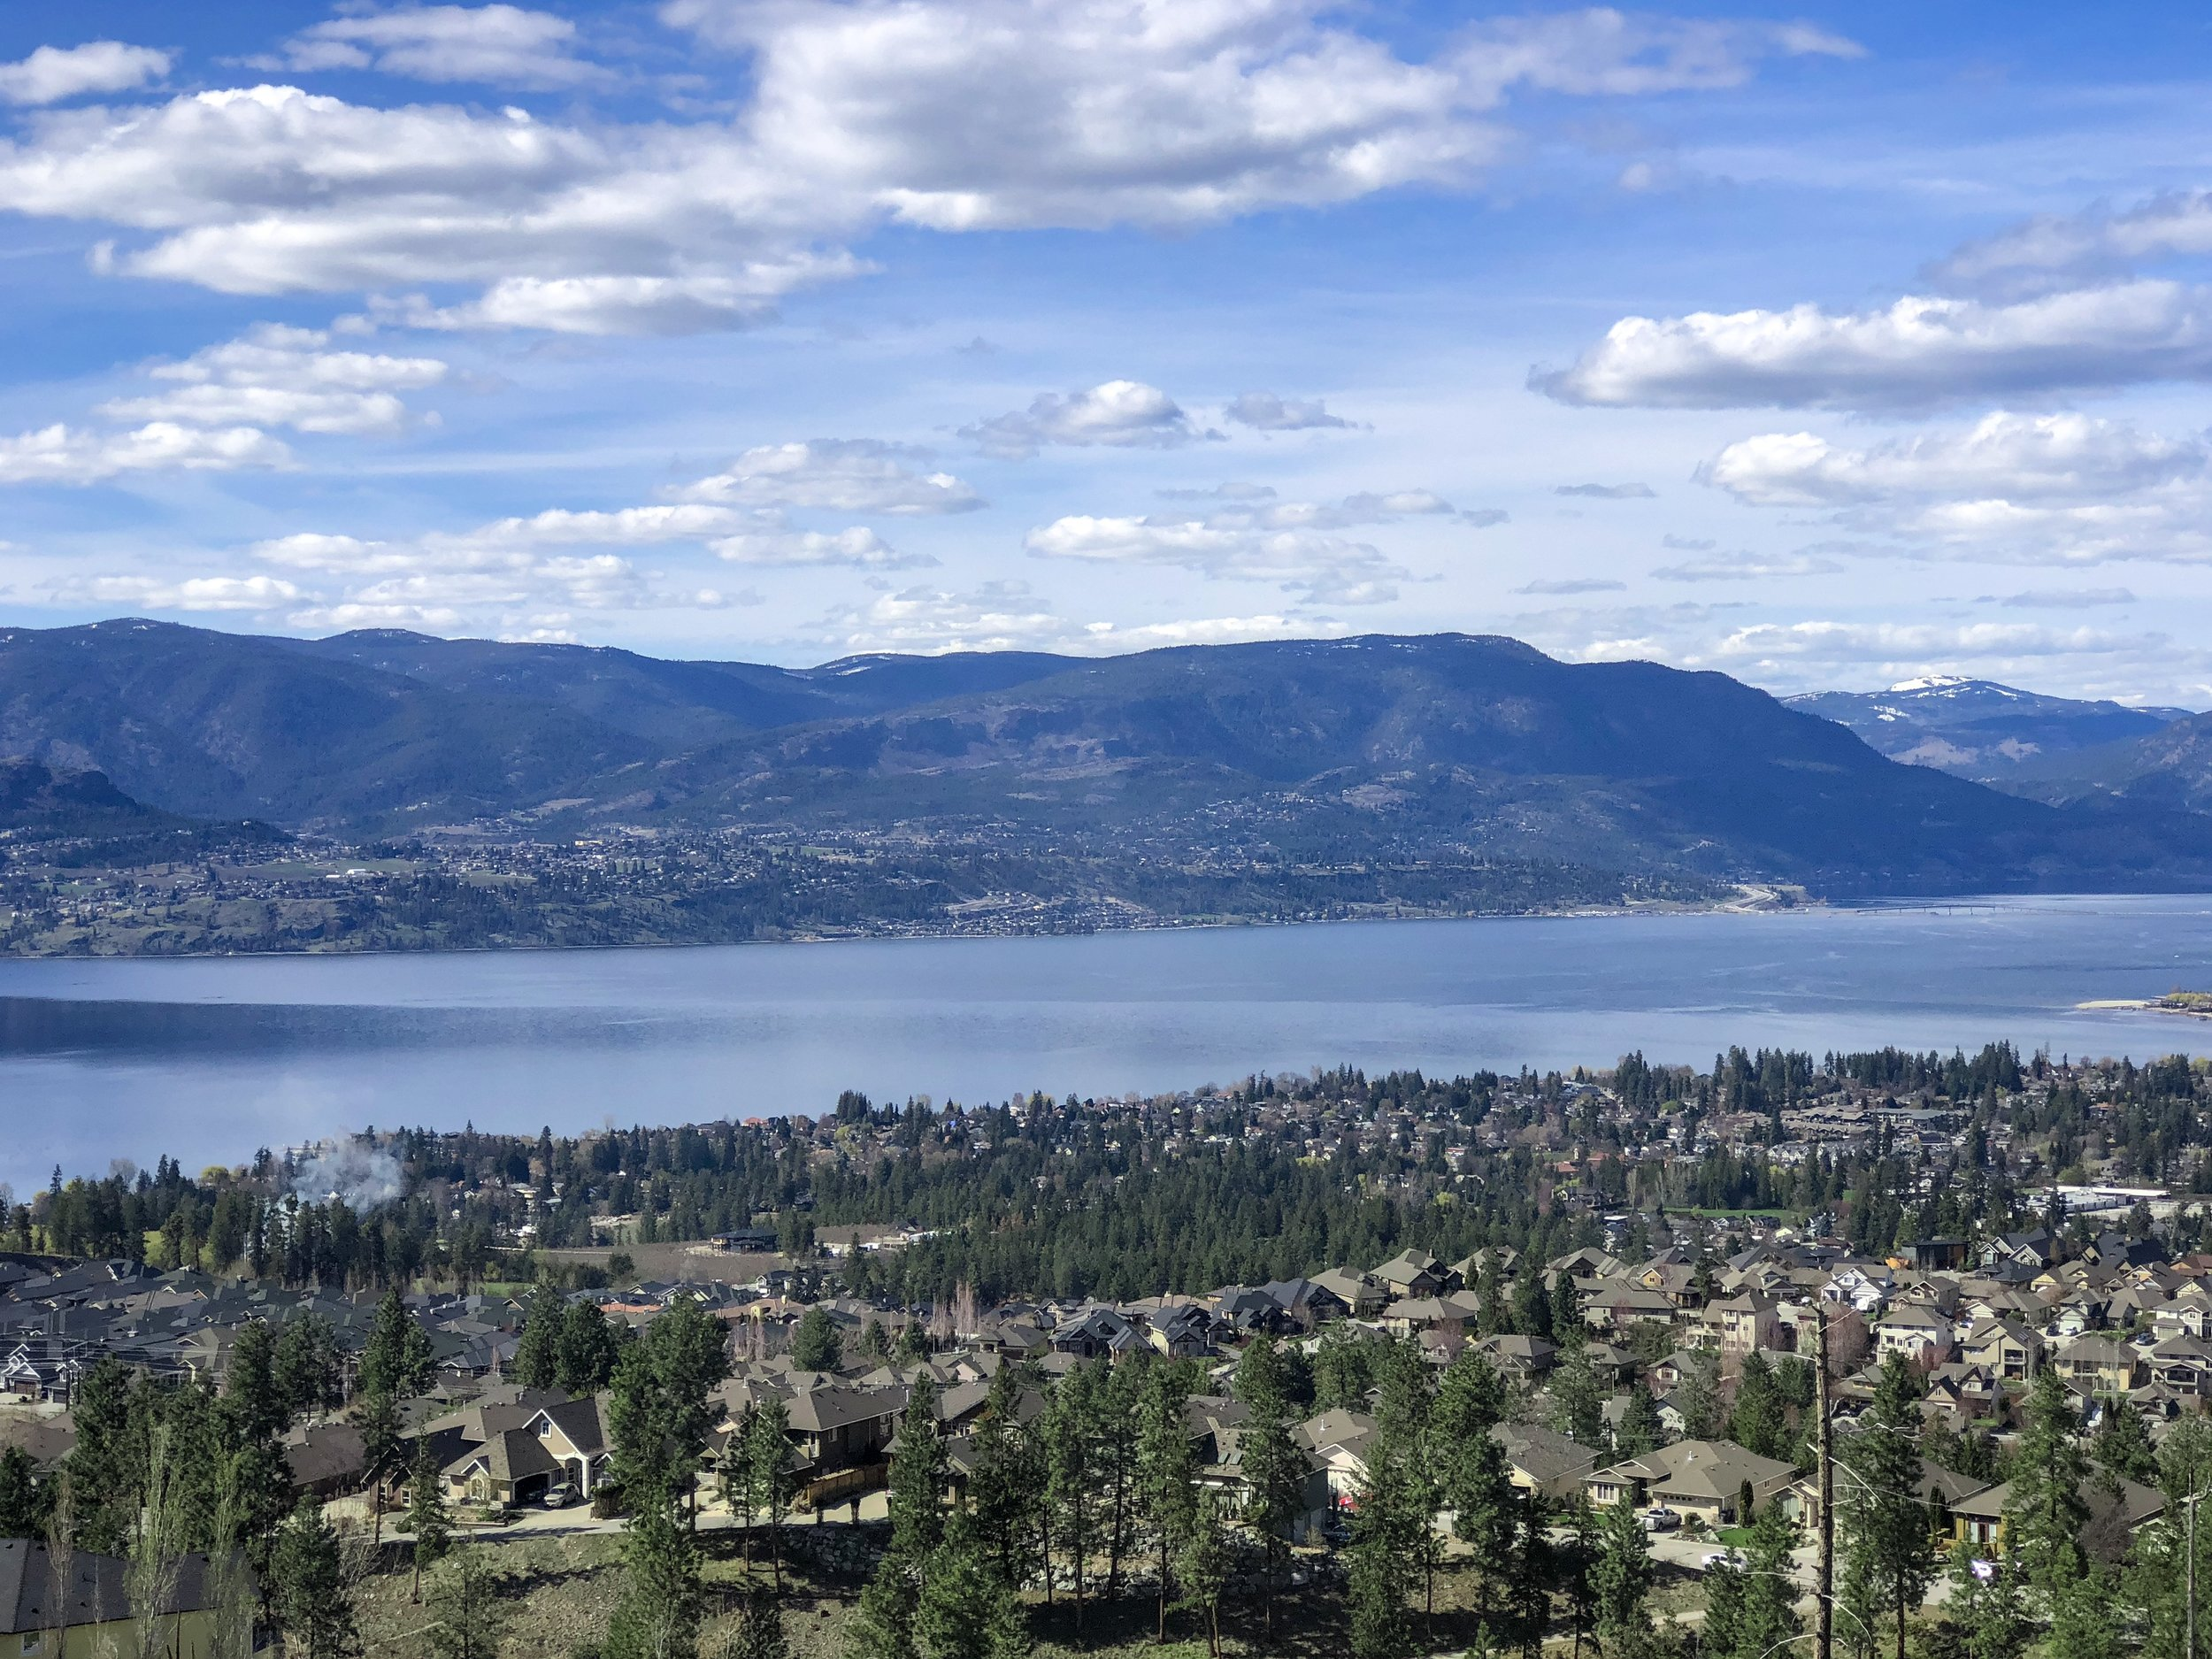 kelowna-neighbourhoods-joshua-elliott.jpg